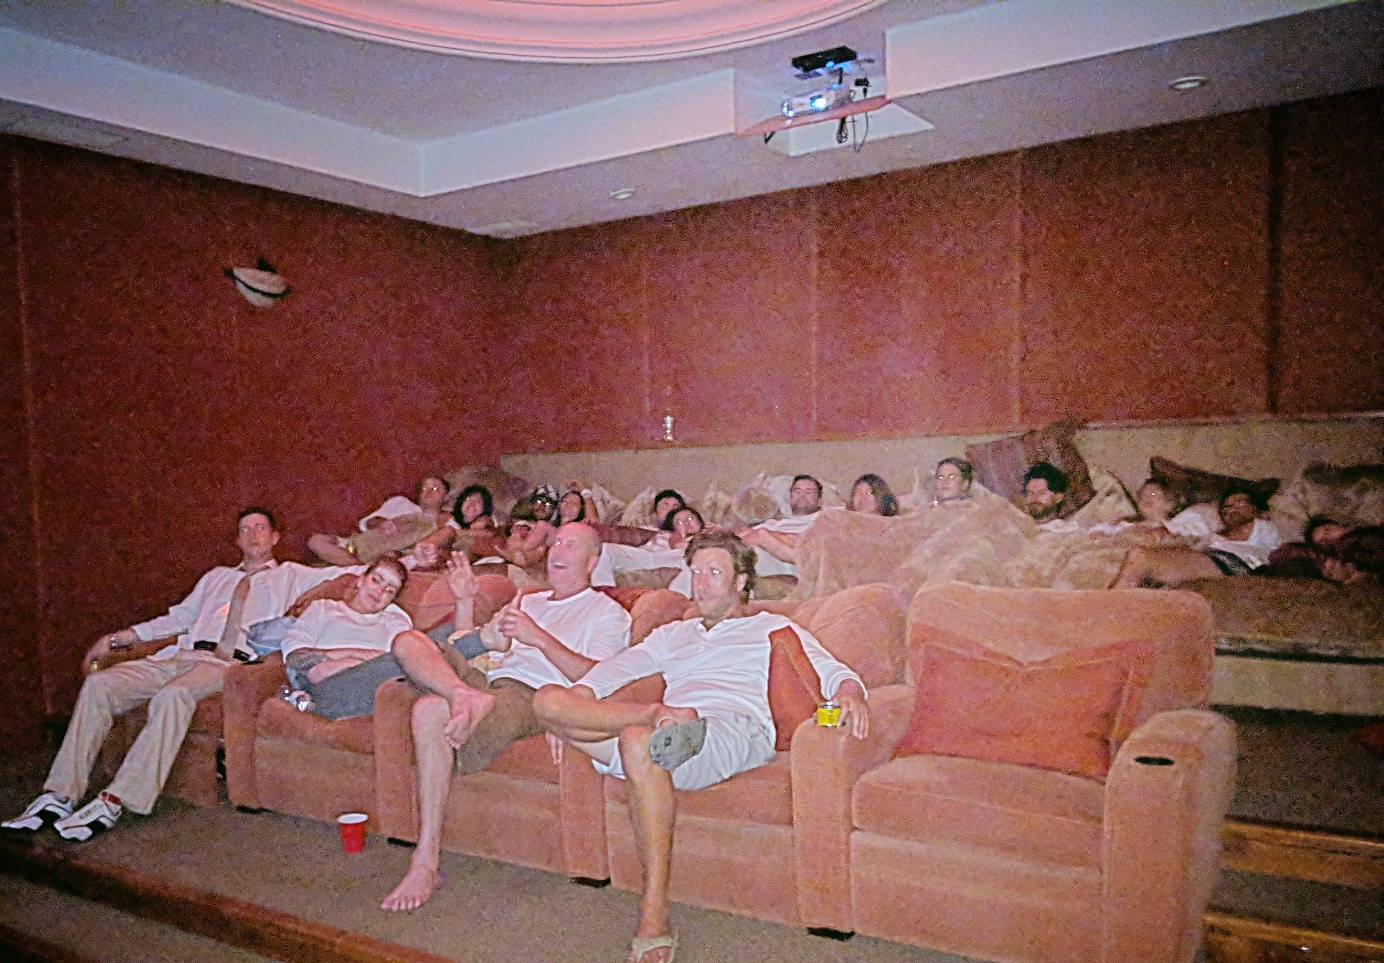 Cuddle puddle in the private theater